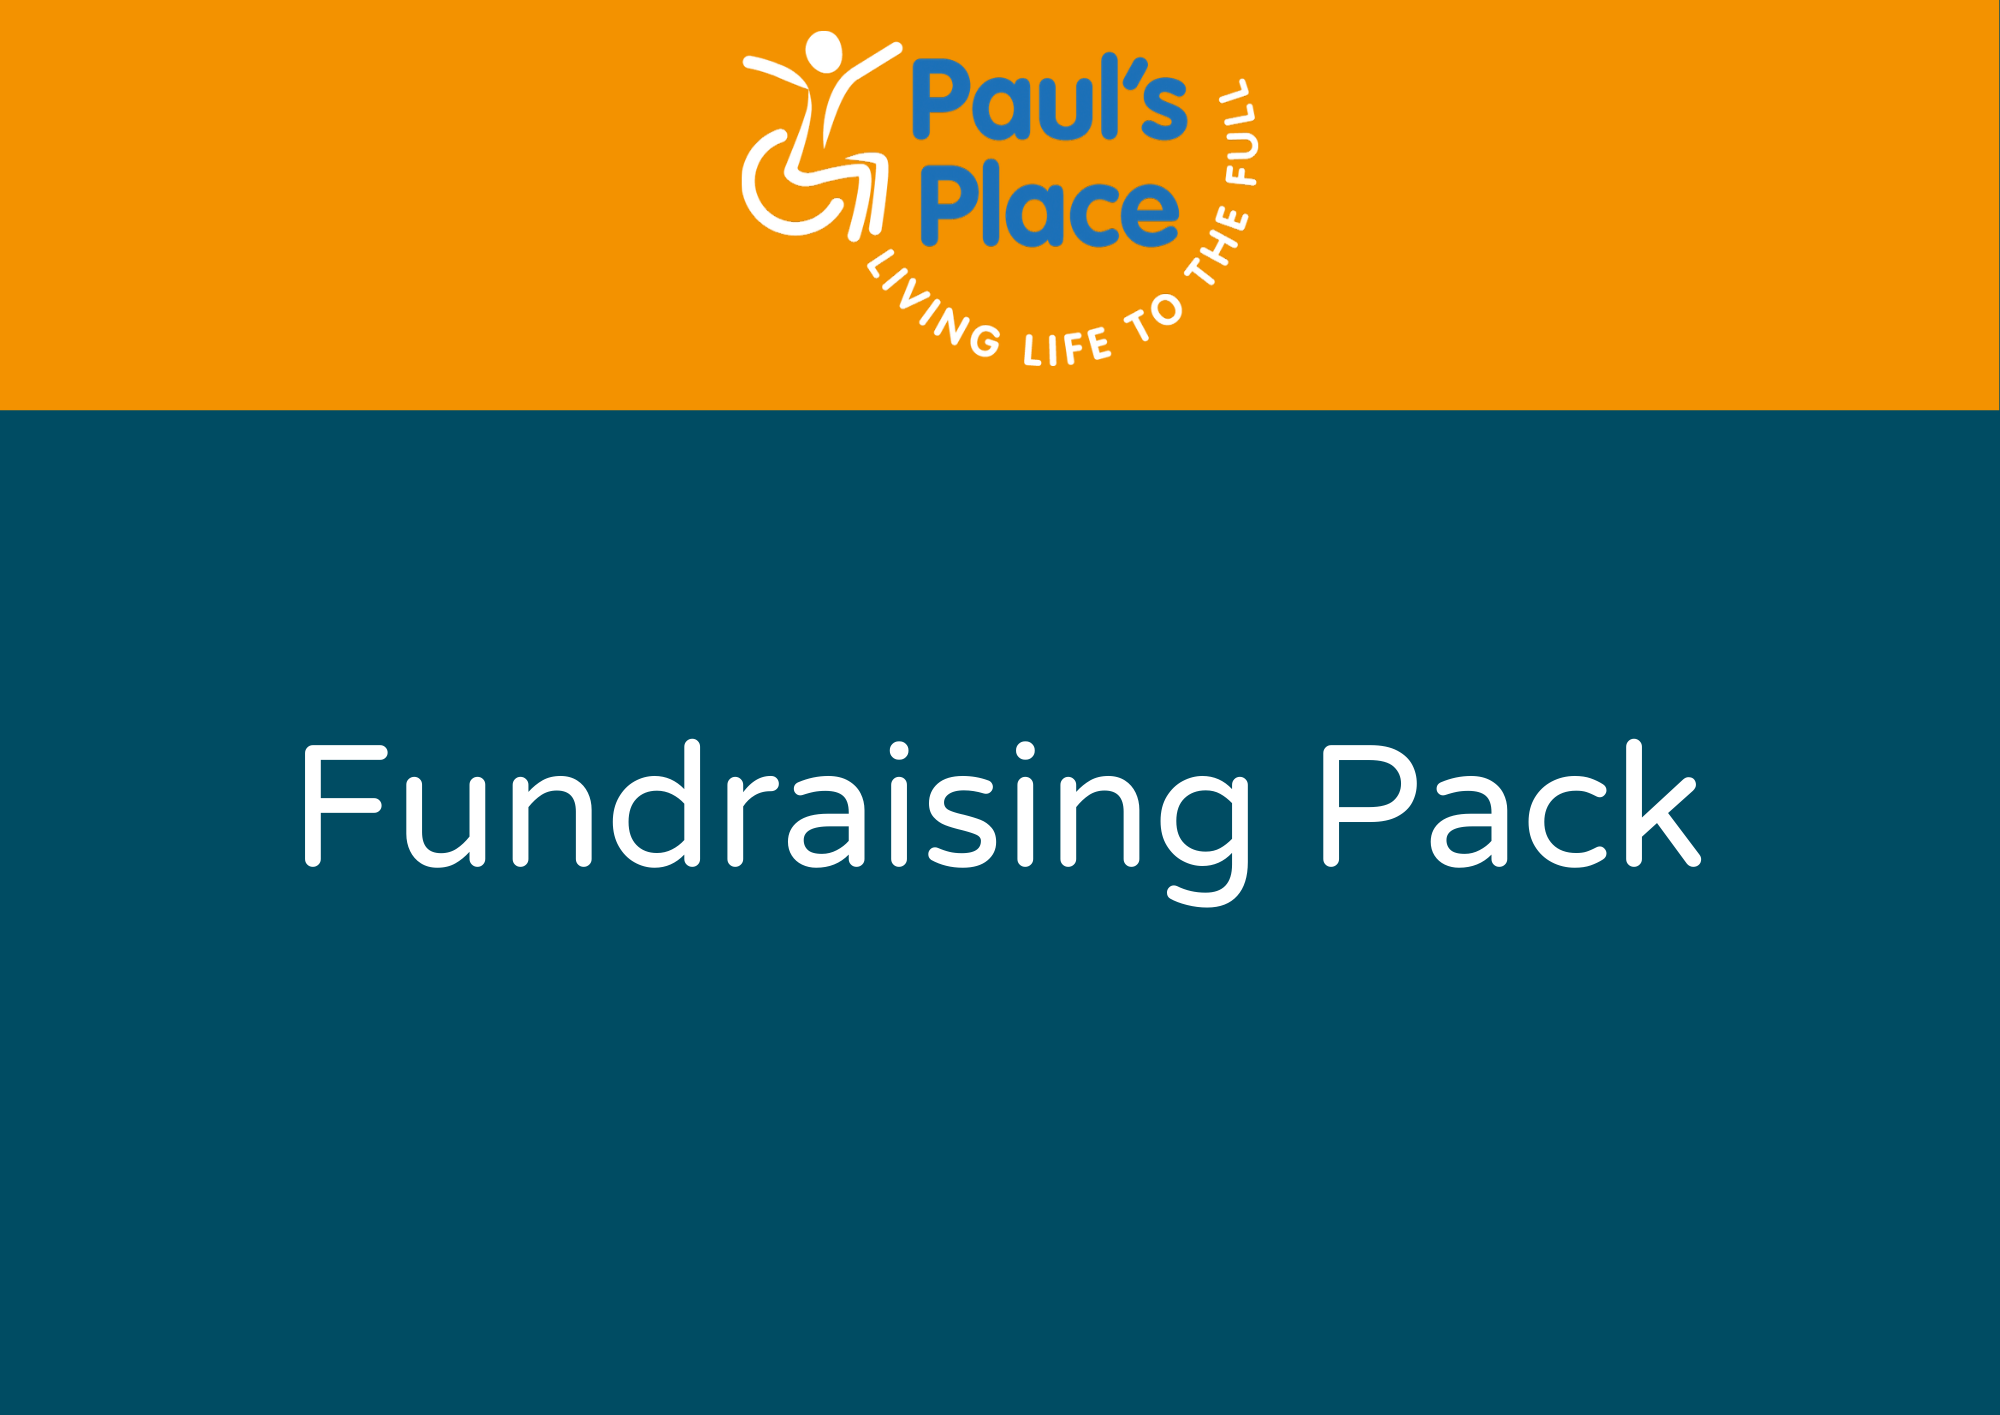 Paul's Place Fundraising Pack